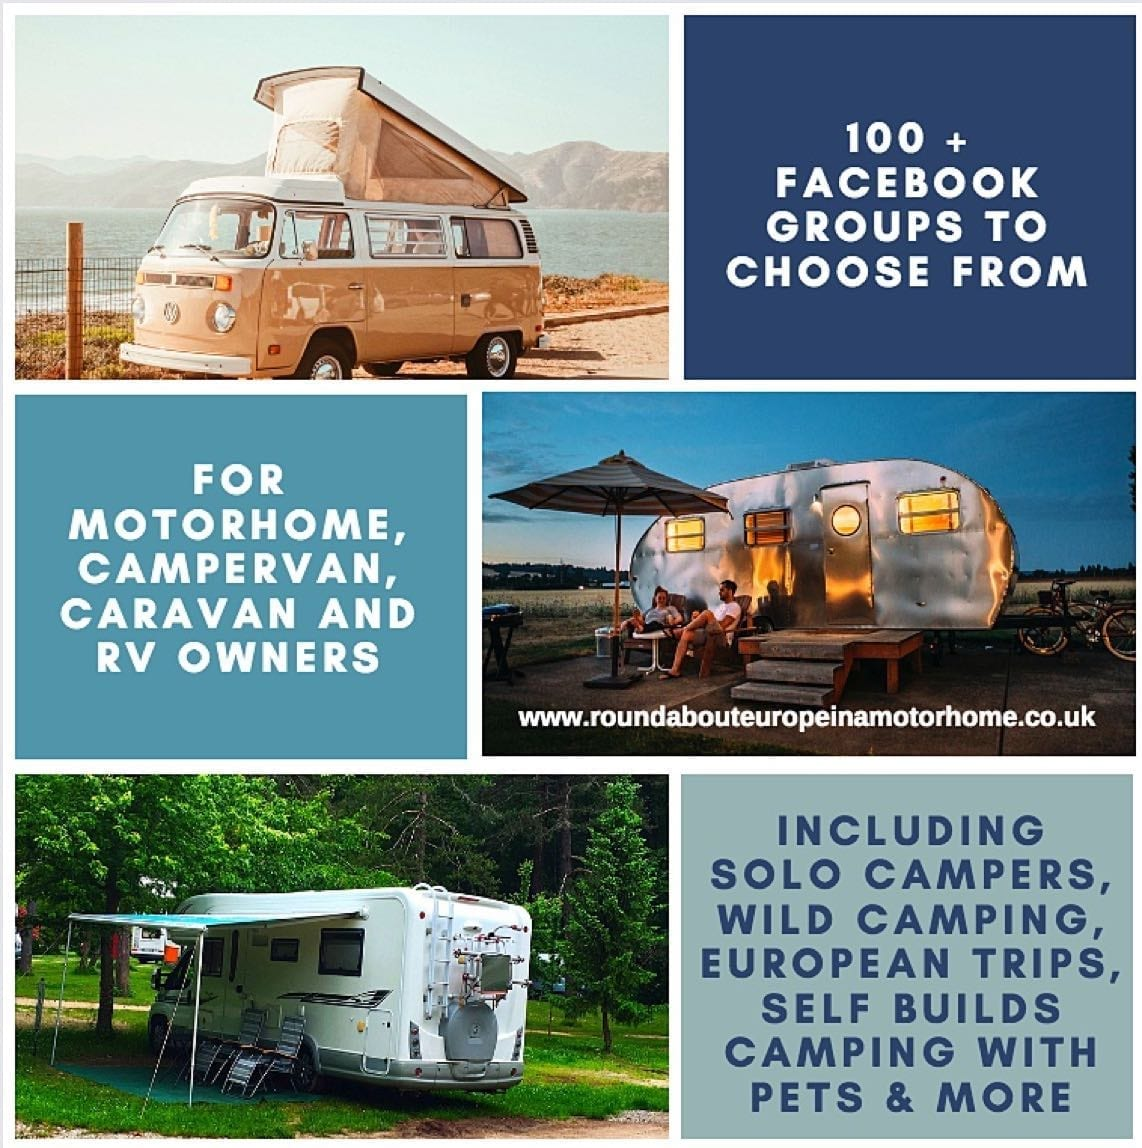 100+ Facebook Groups for Motorhomers